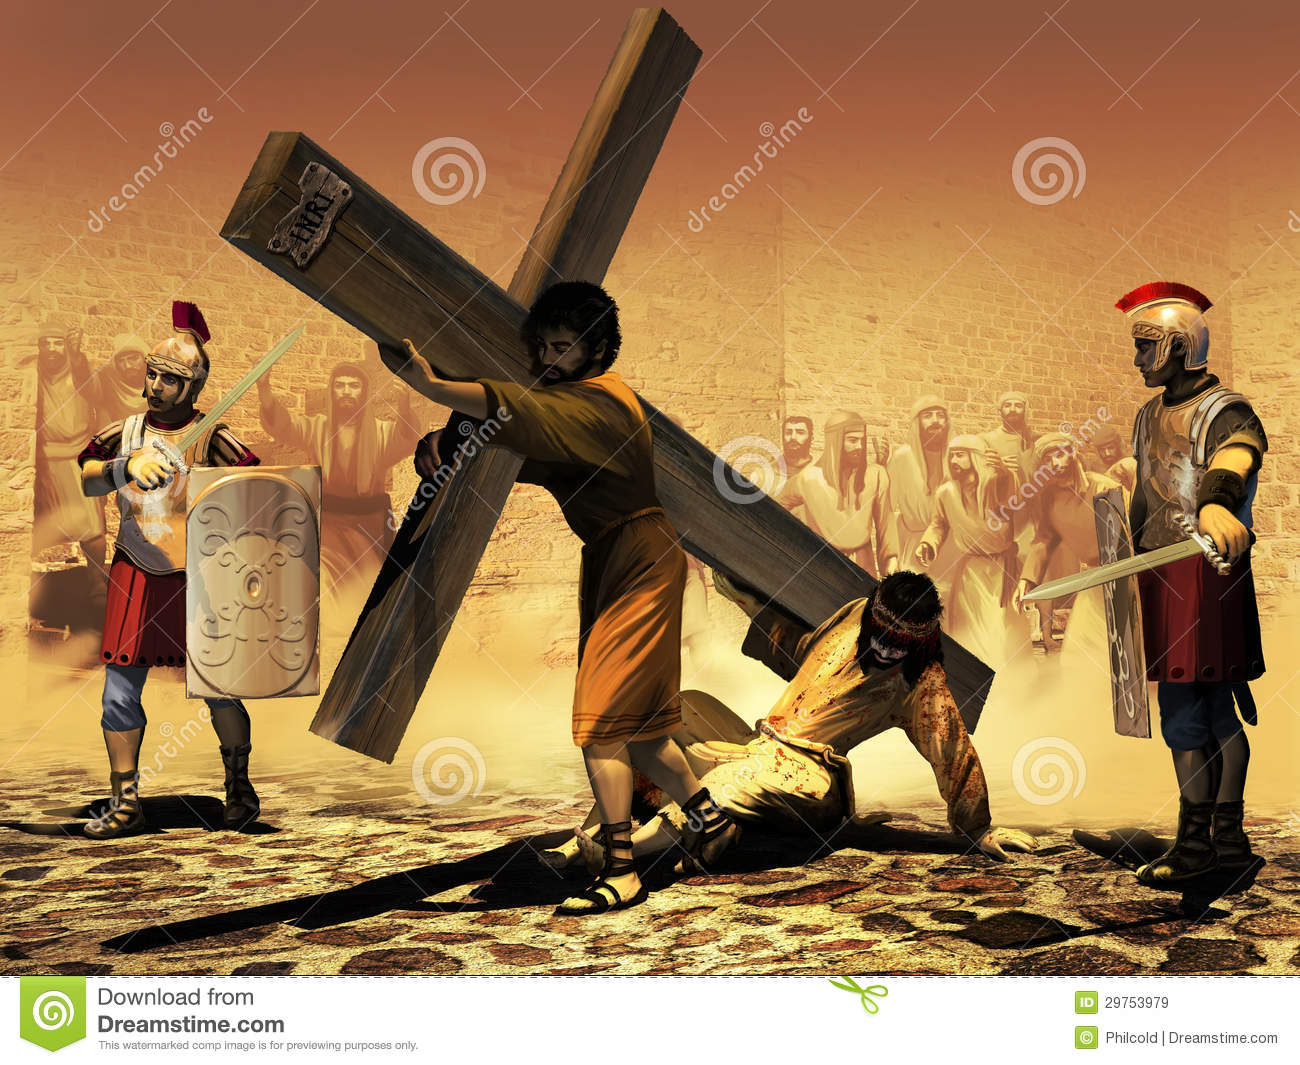 Free images: religion, church, painting, wooden cross, art.